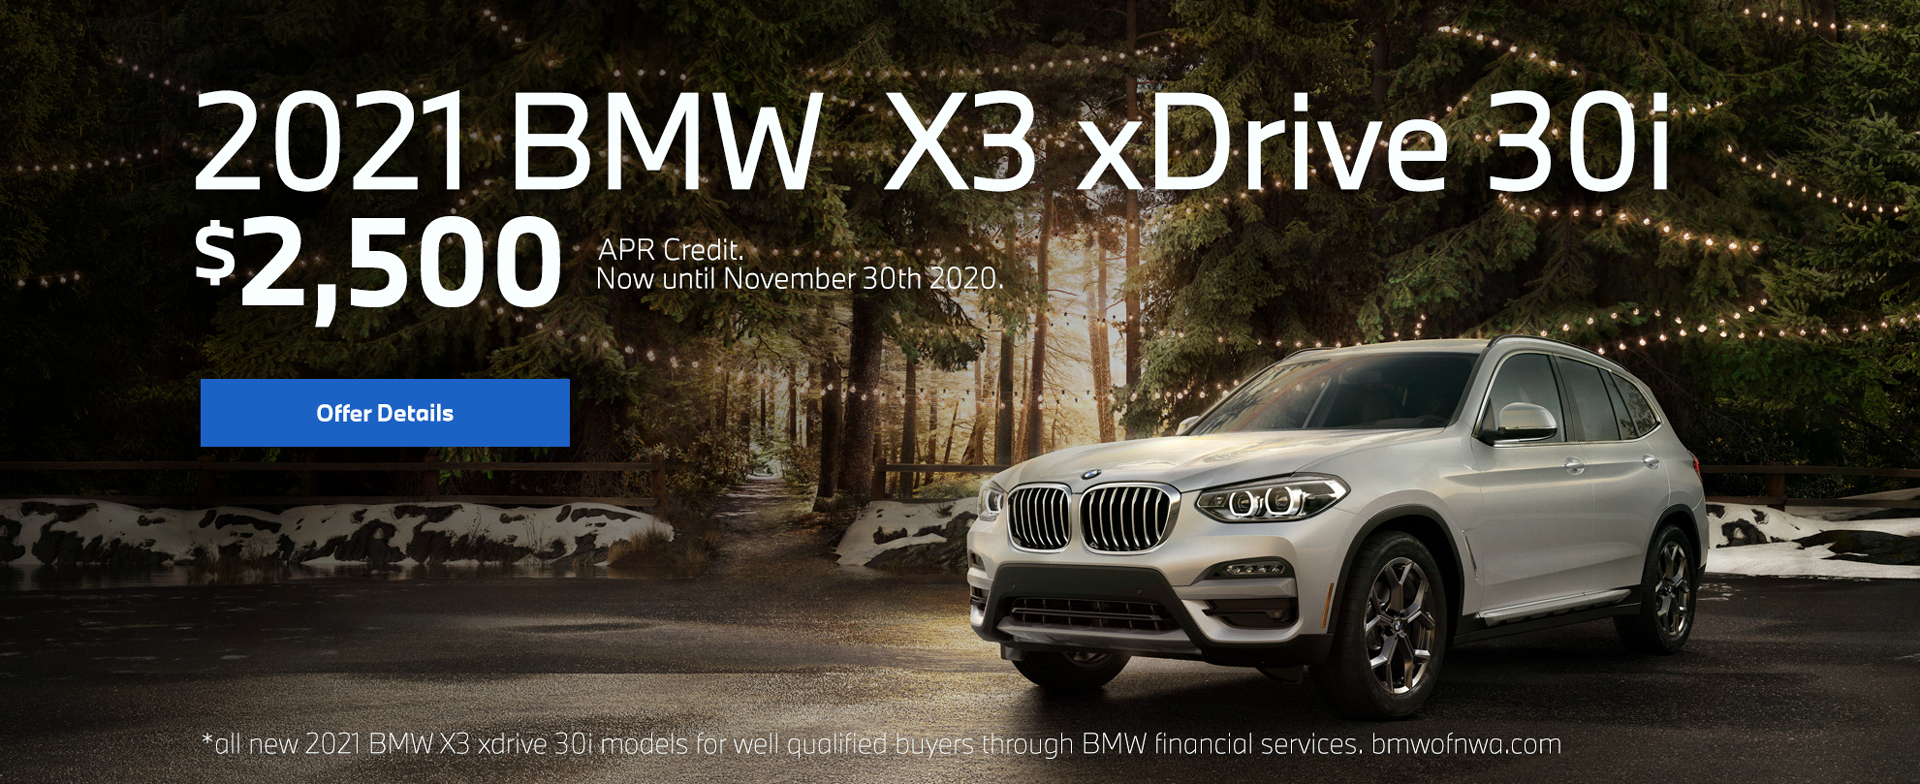 2021 BMW x3 xDrive 30i $2,500 Appr Credit. Now until November 30th 2020.